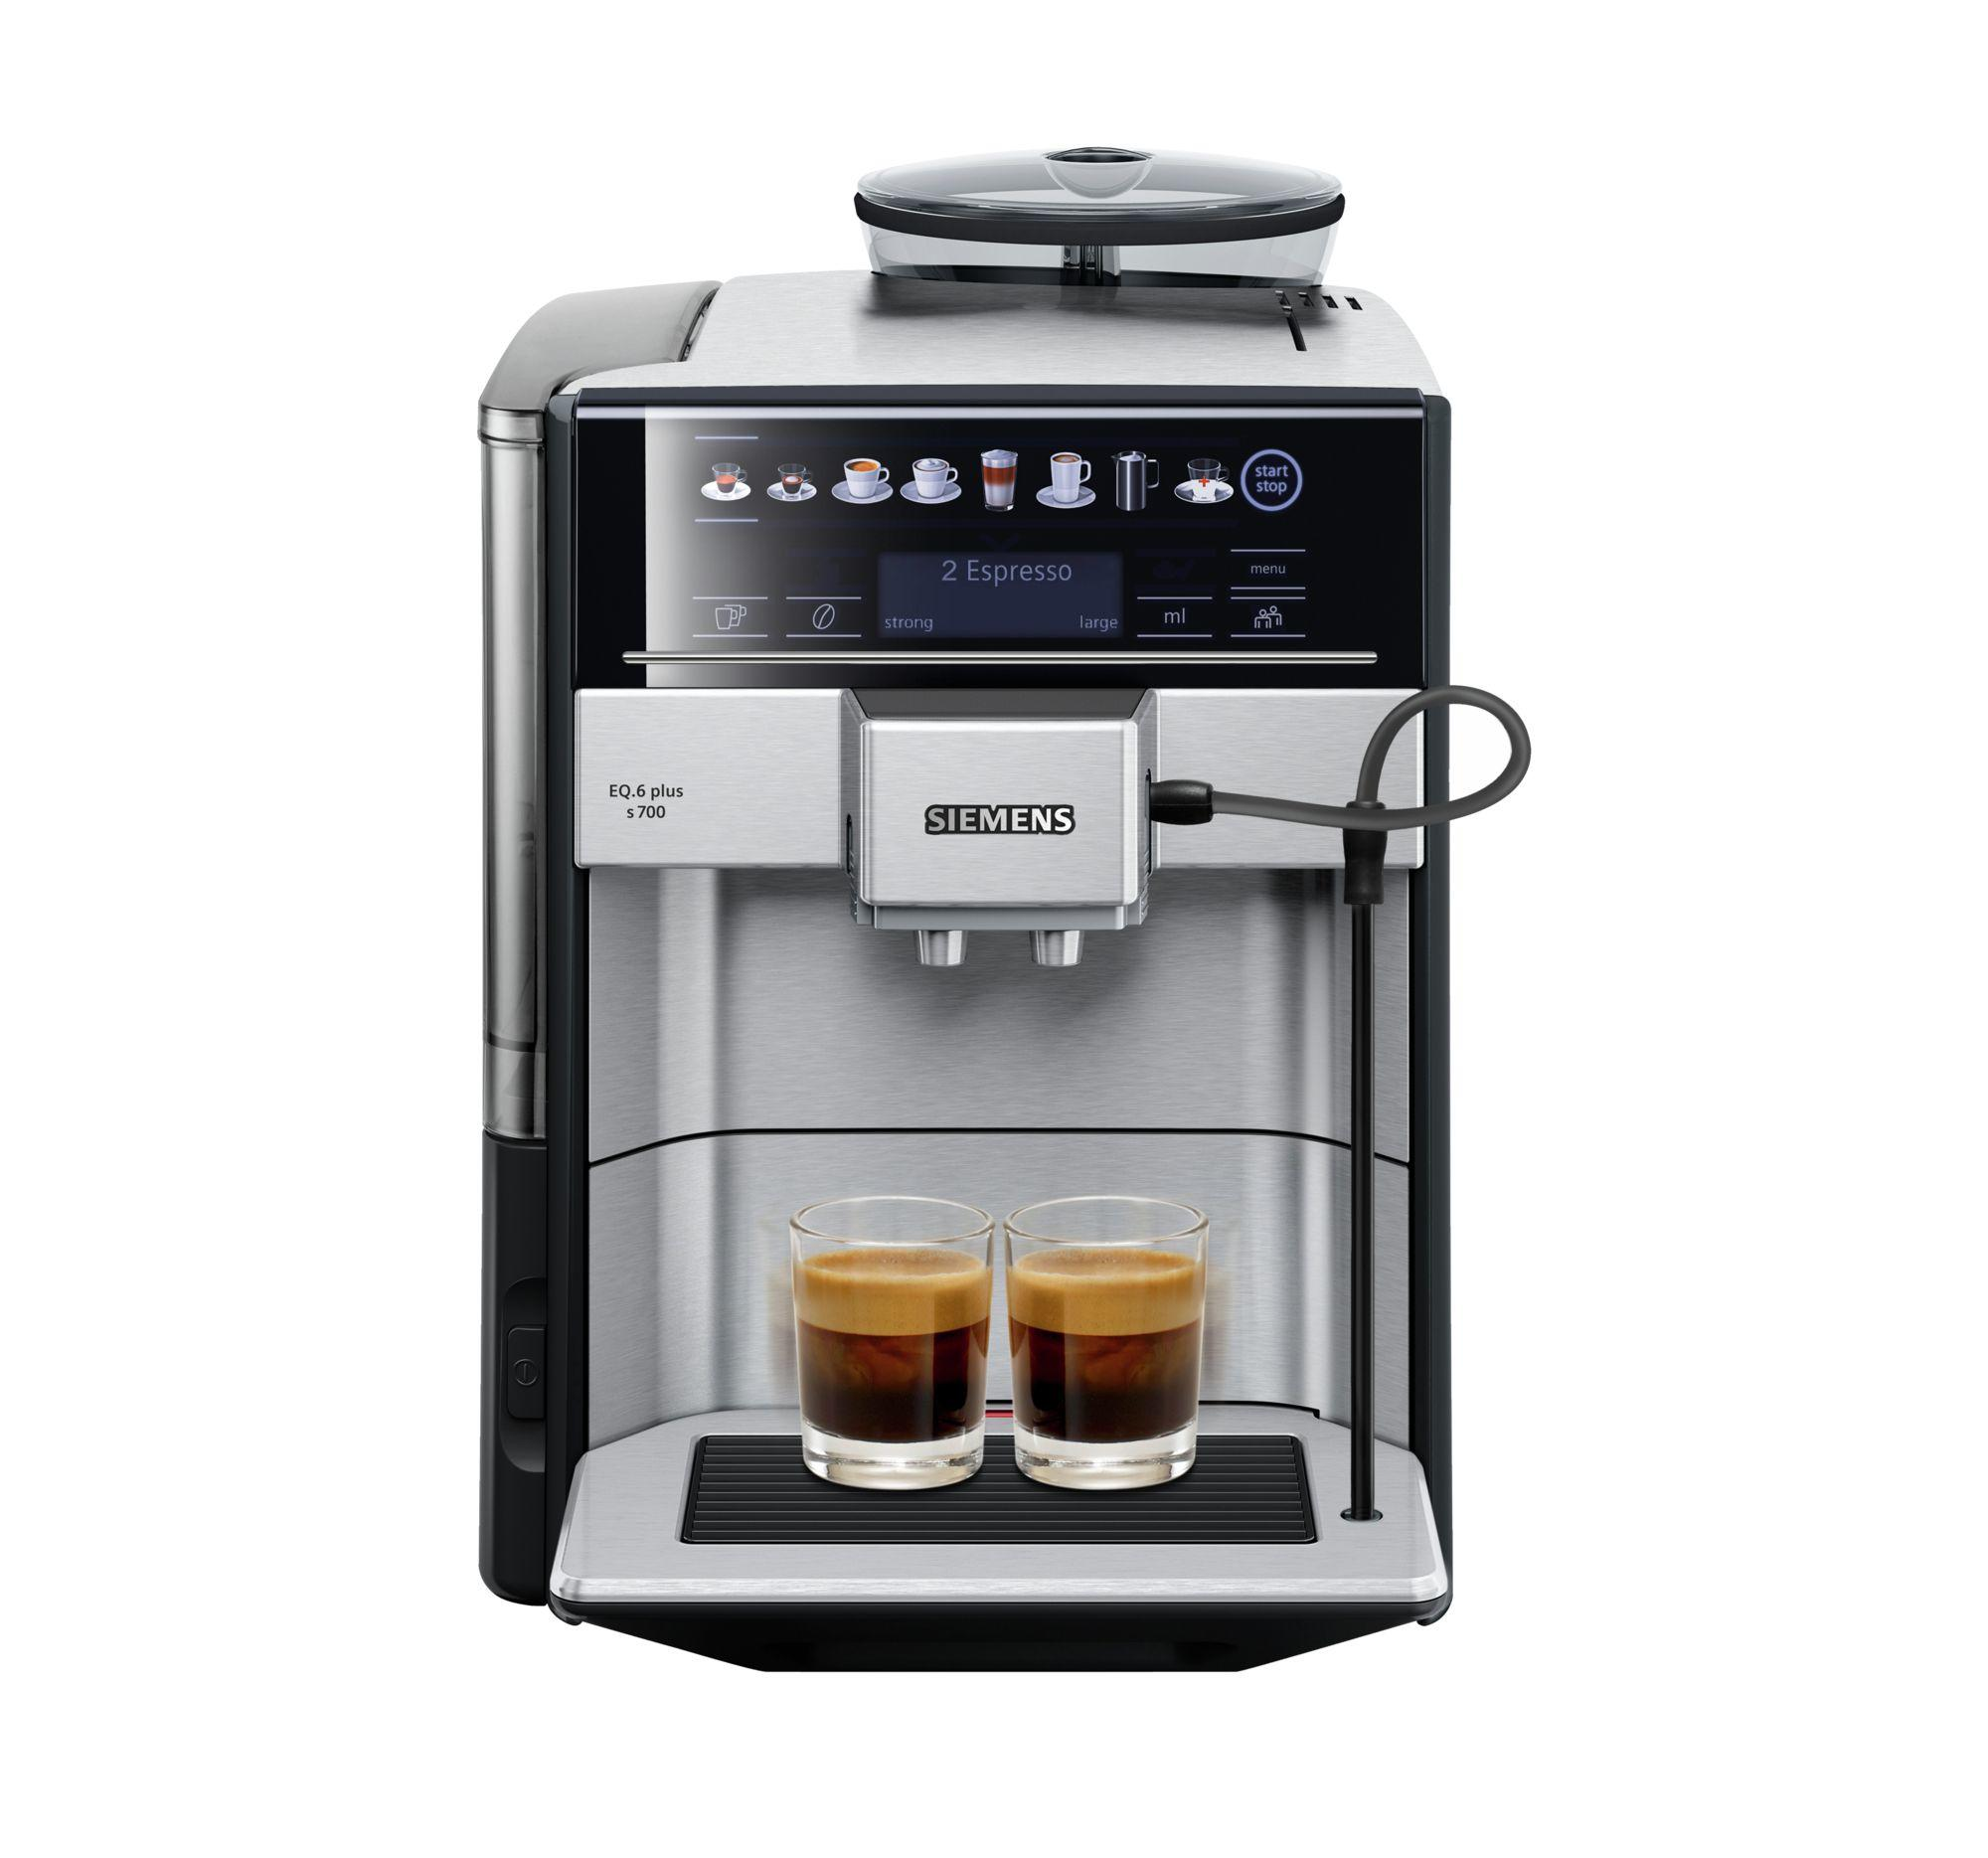 Image of TE657313RW EQ.6 s700 Fully Automatic Coffee Machine